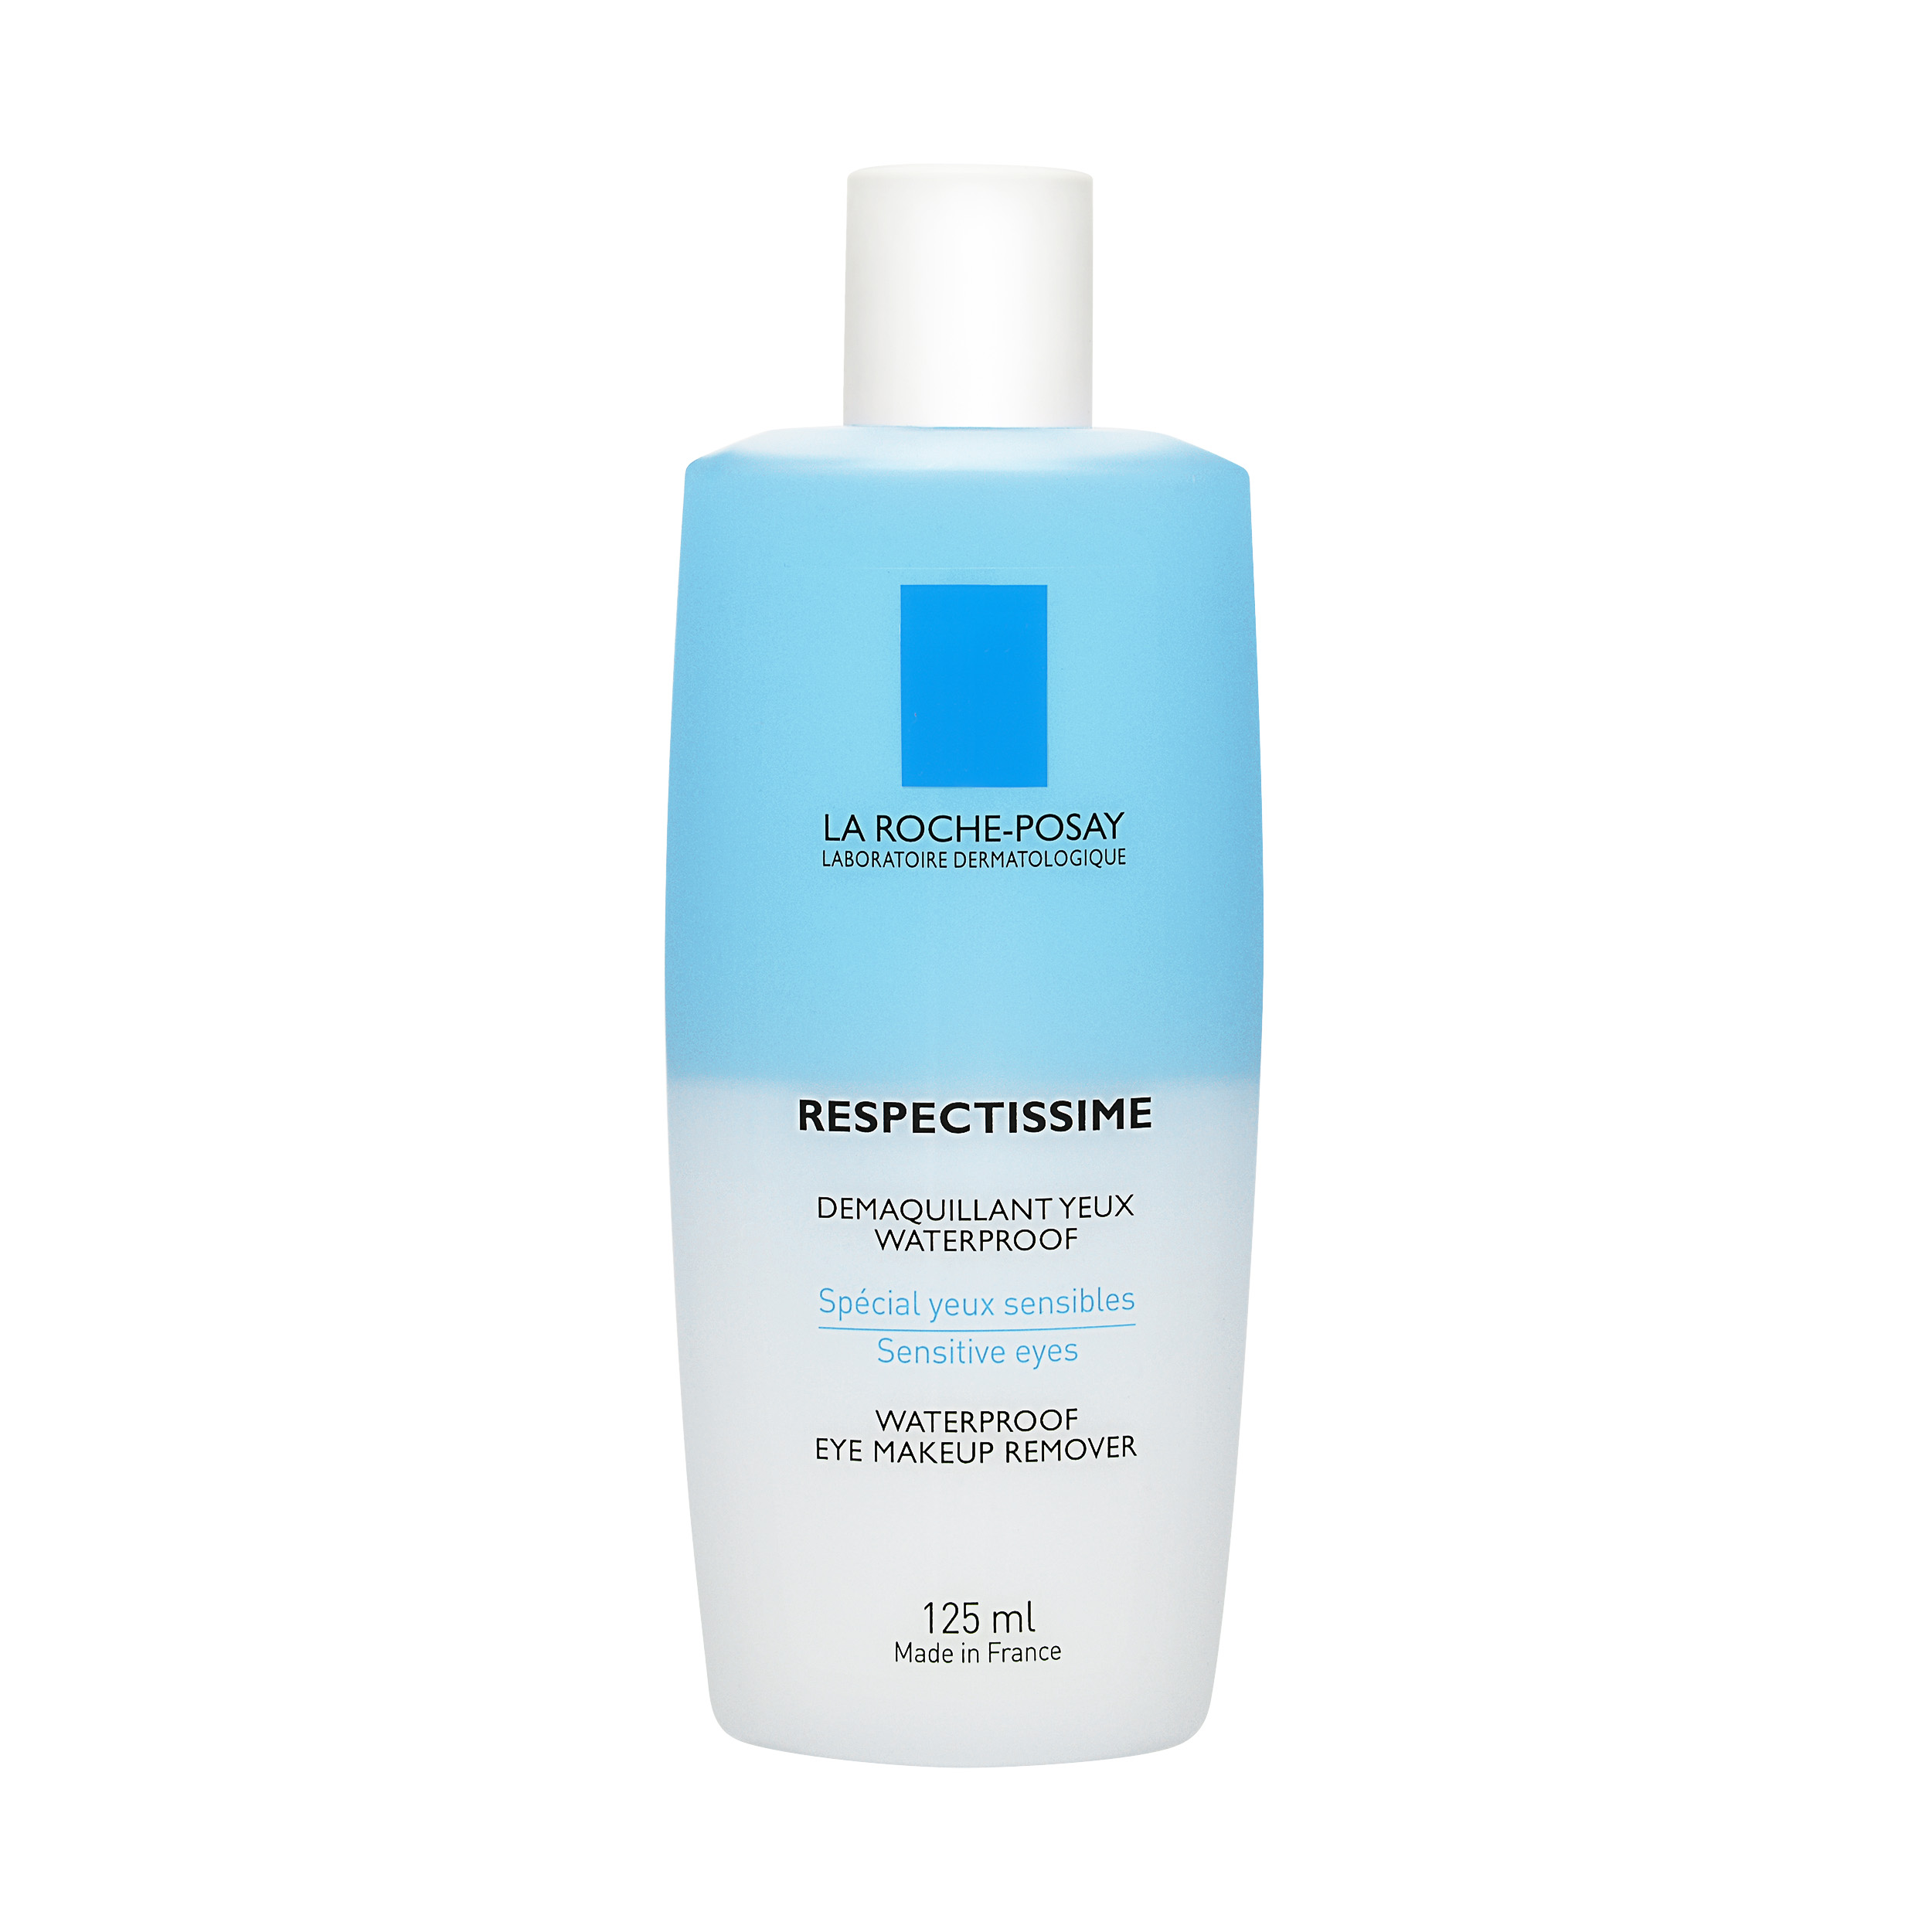 La Roche-Posay Respectissime Waterproof Eye Makeup Remover 125ml, 125g